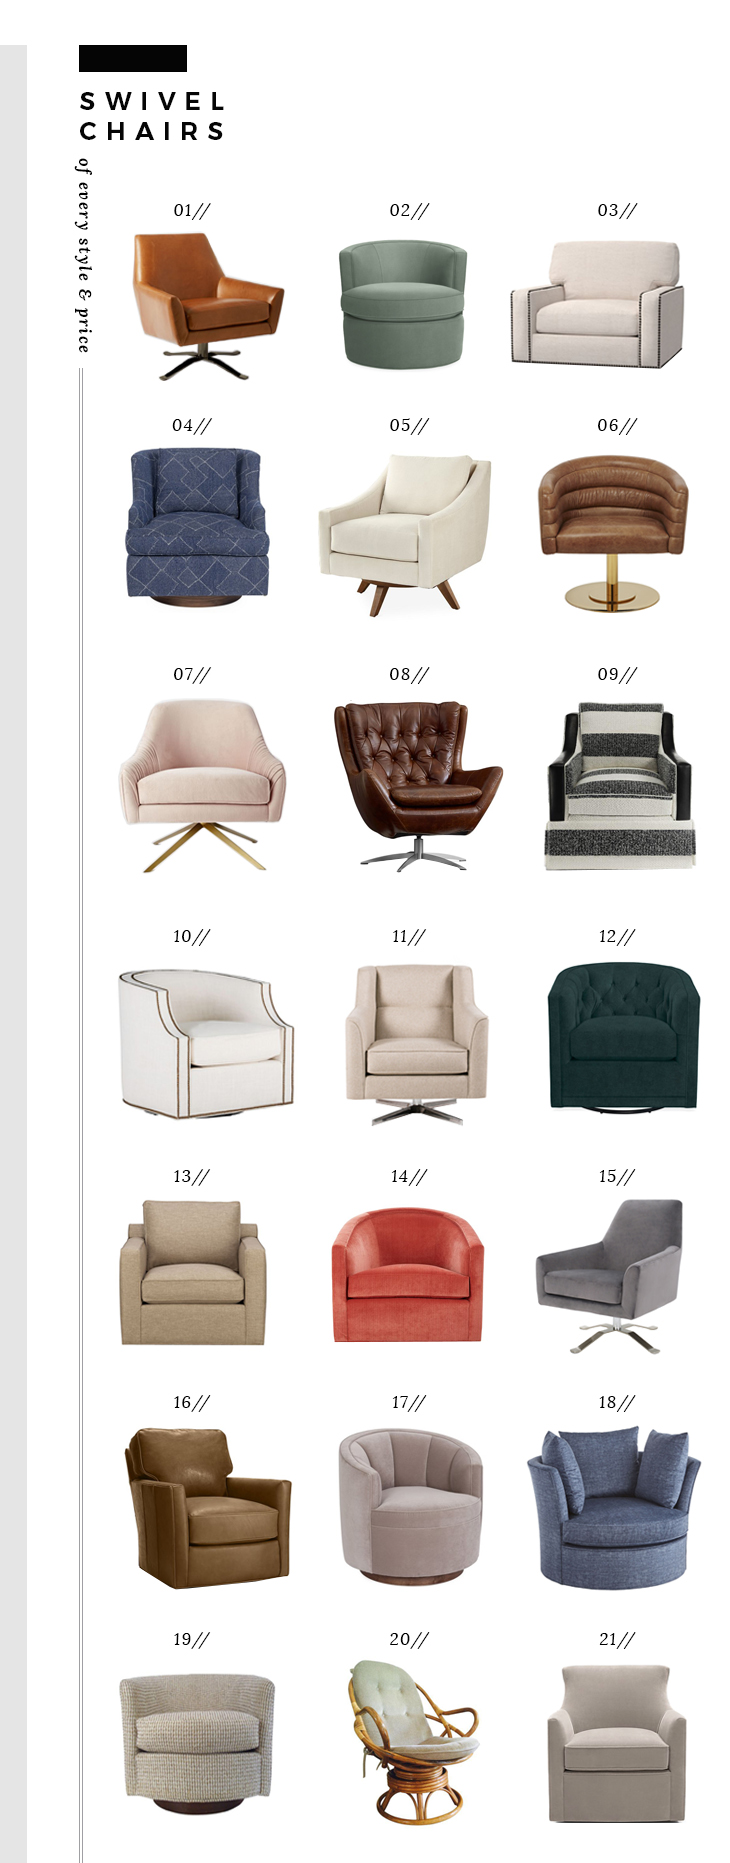 comfortable swivel chair wicker lounge chairs sale of every style and price room for tuesday